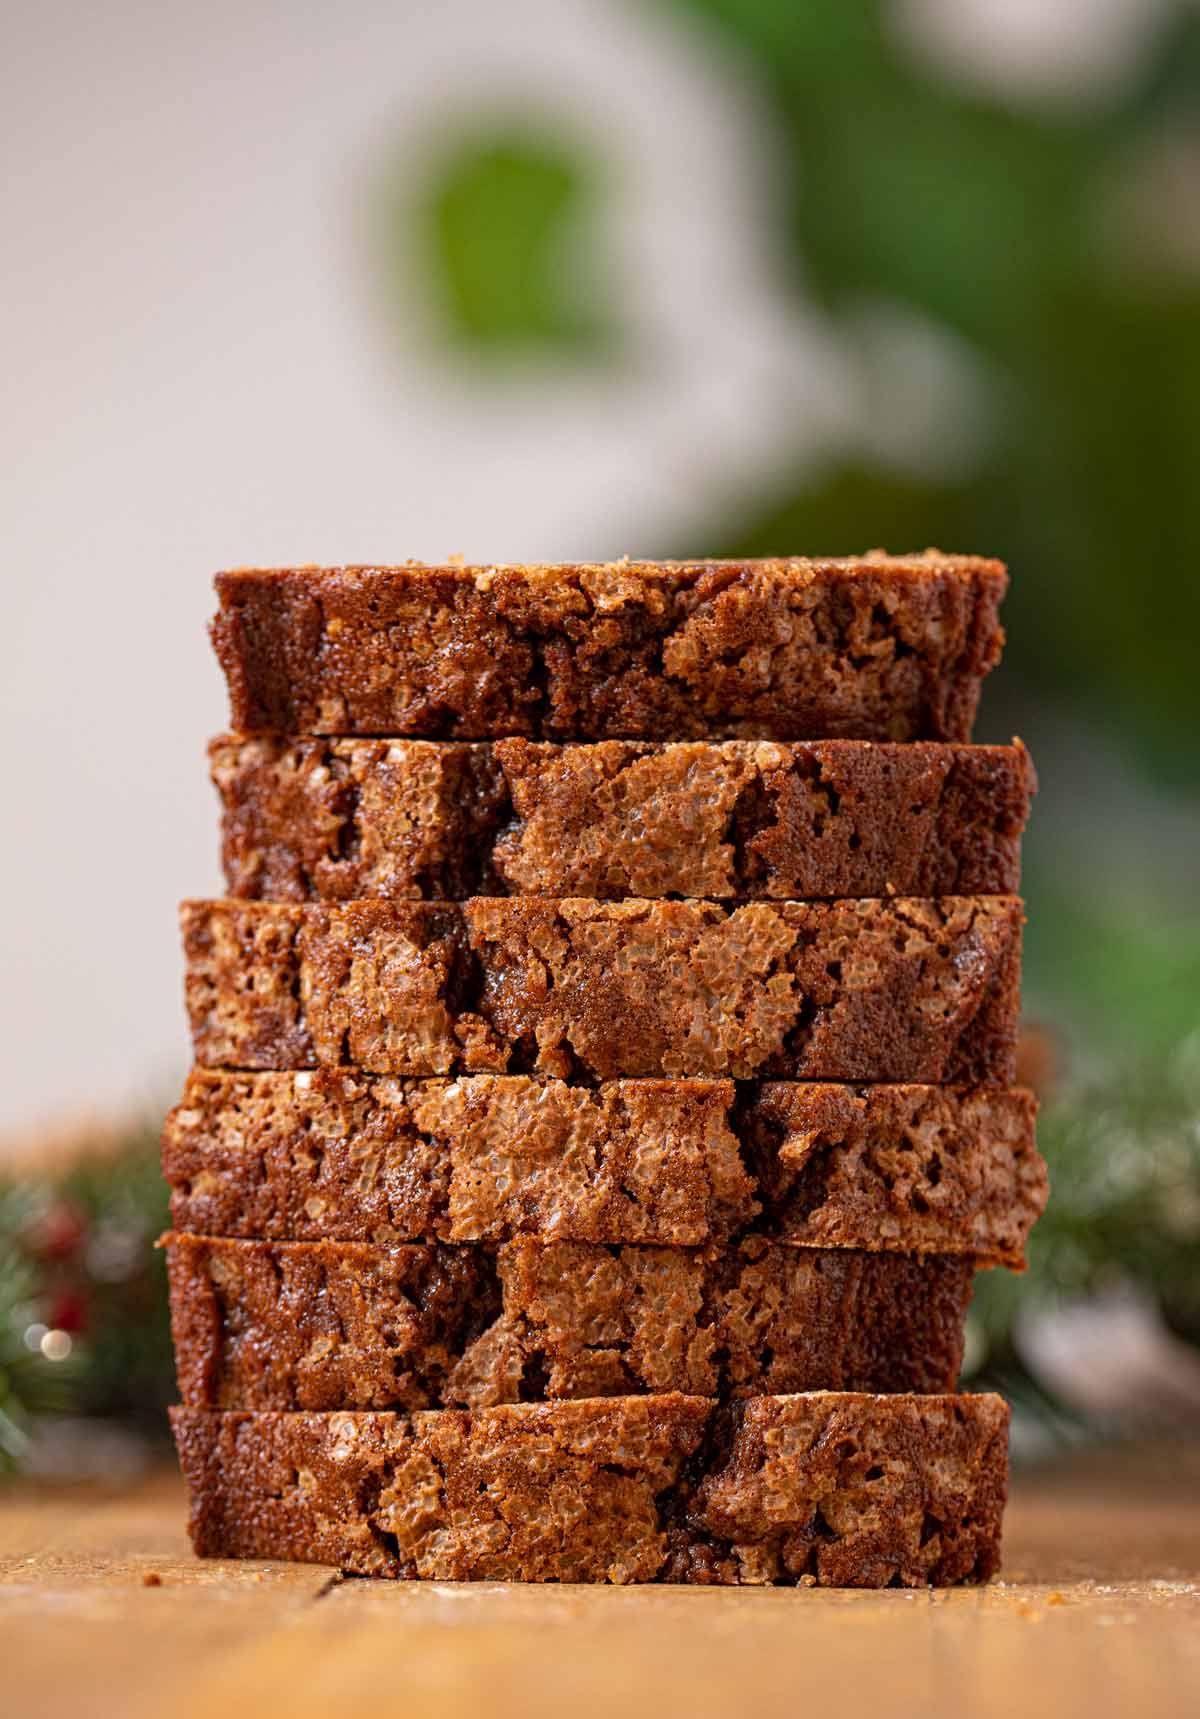 Gingerbread Loaf Cake Recipe (Perfect for Gifts!) - Dinner, then Dessert